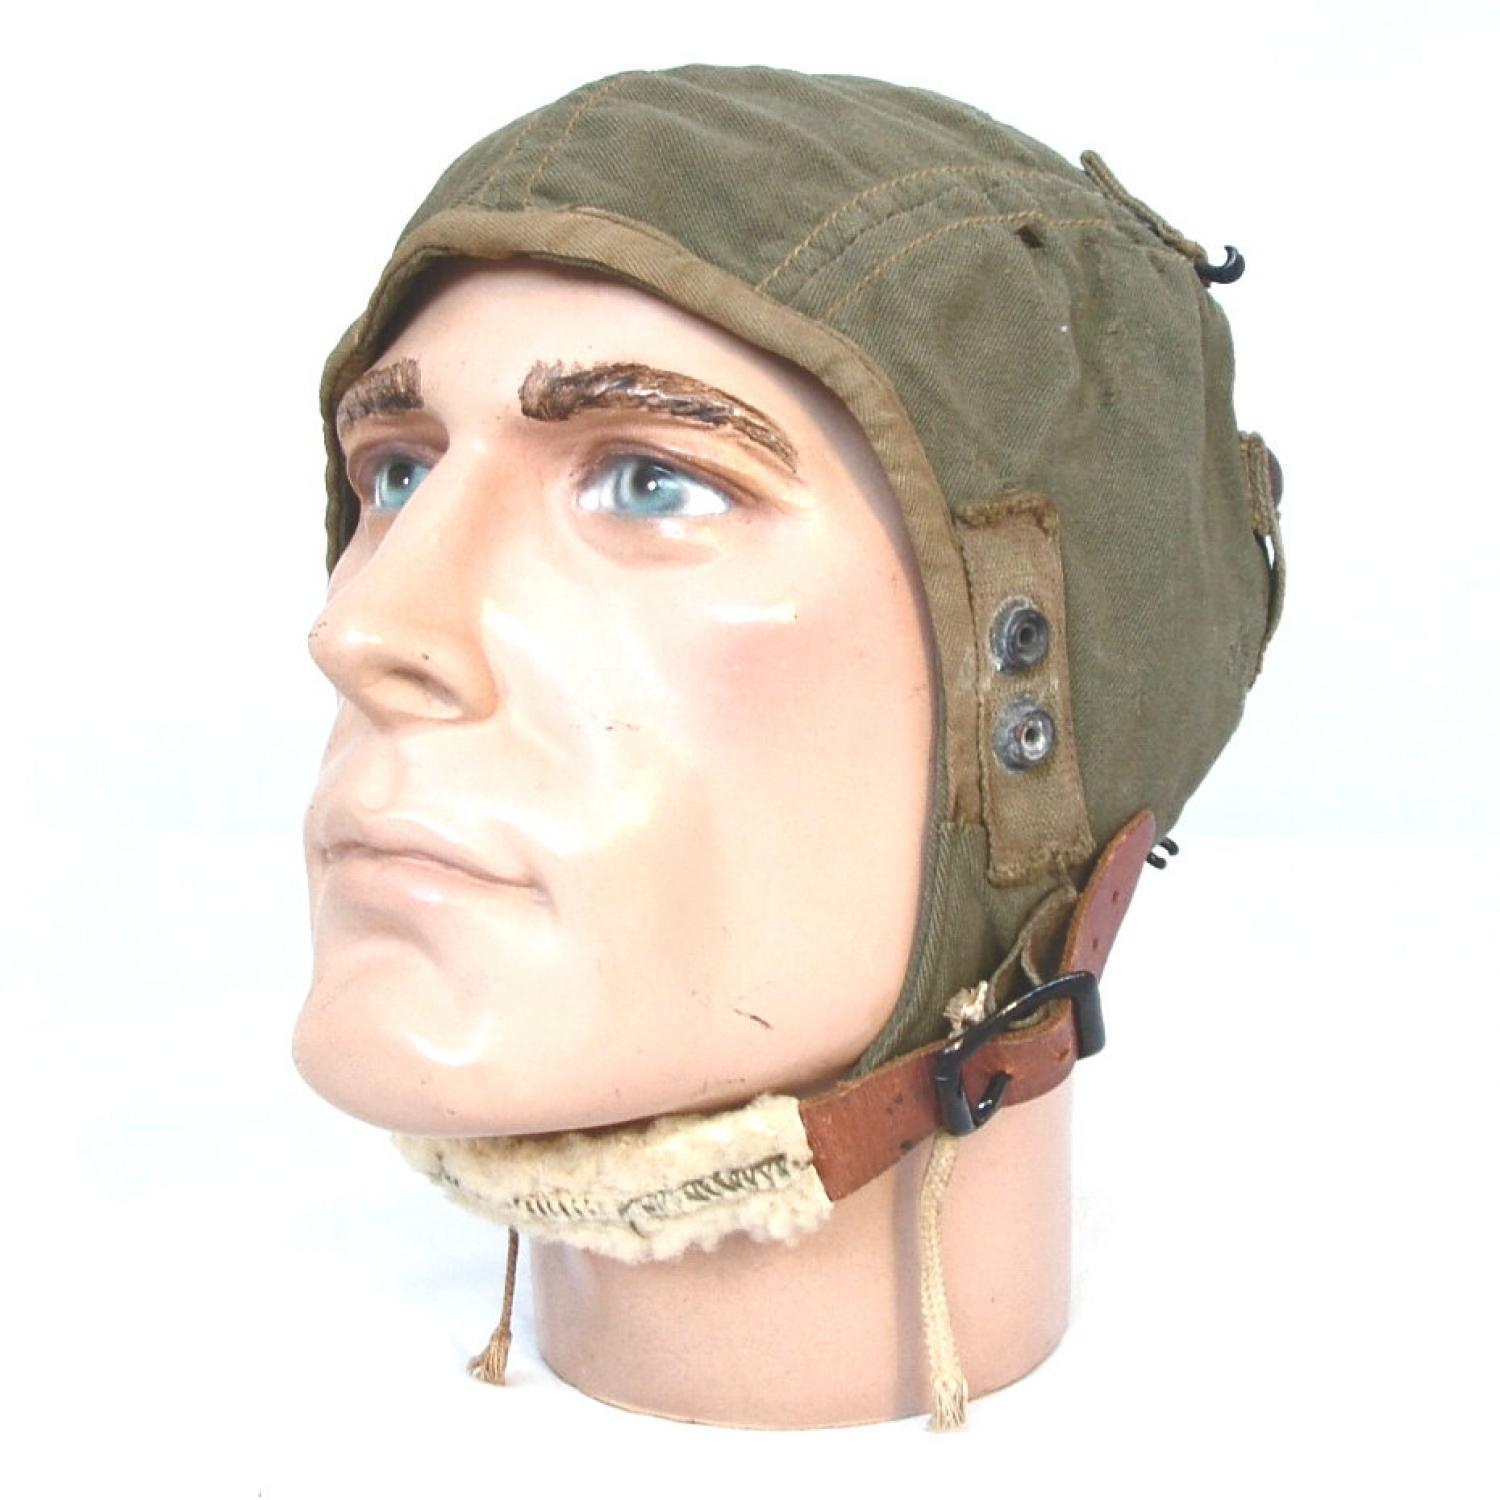 USAAF A-9 Flying Helmet